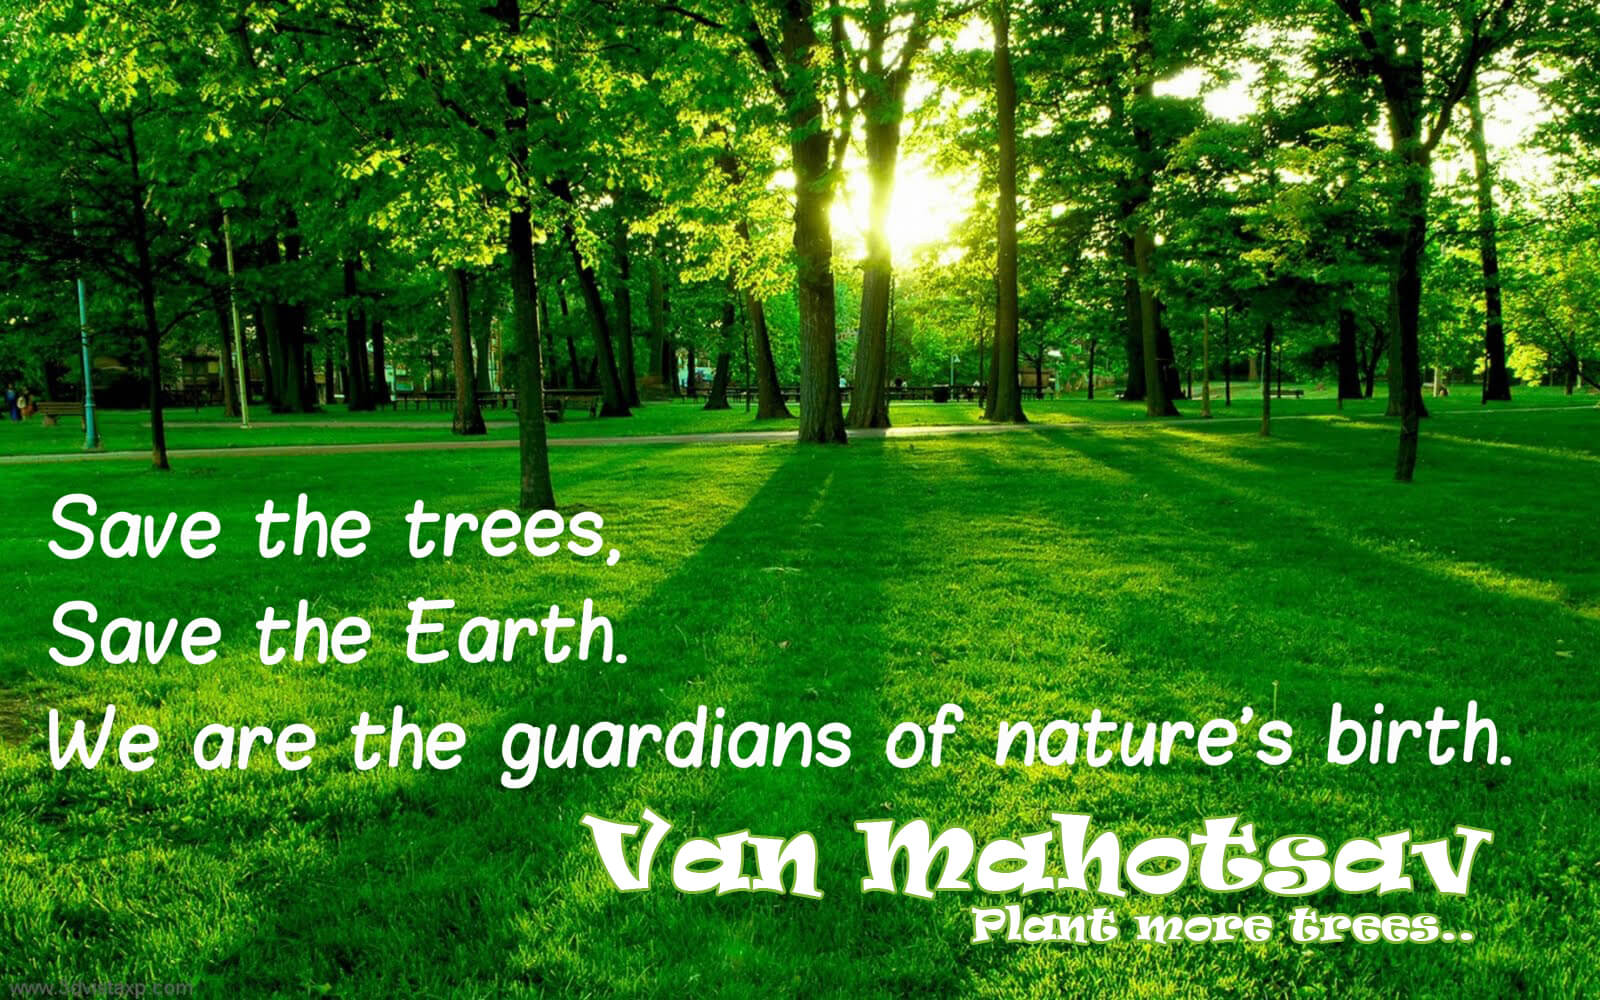 van mahotsav day tree planting save earth nature image